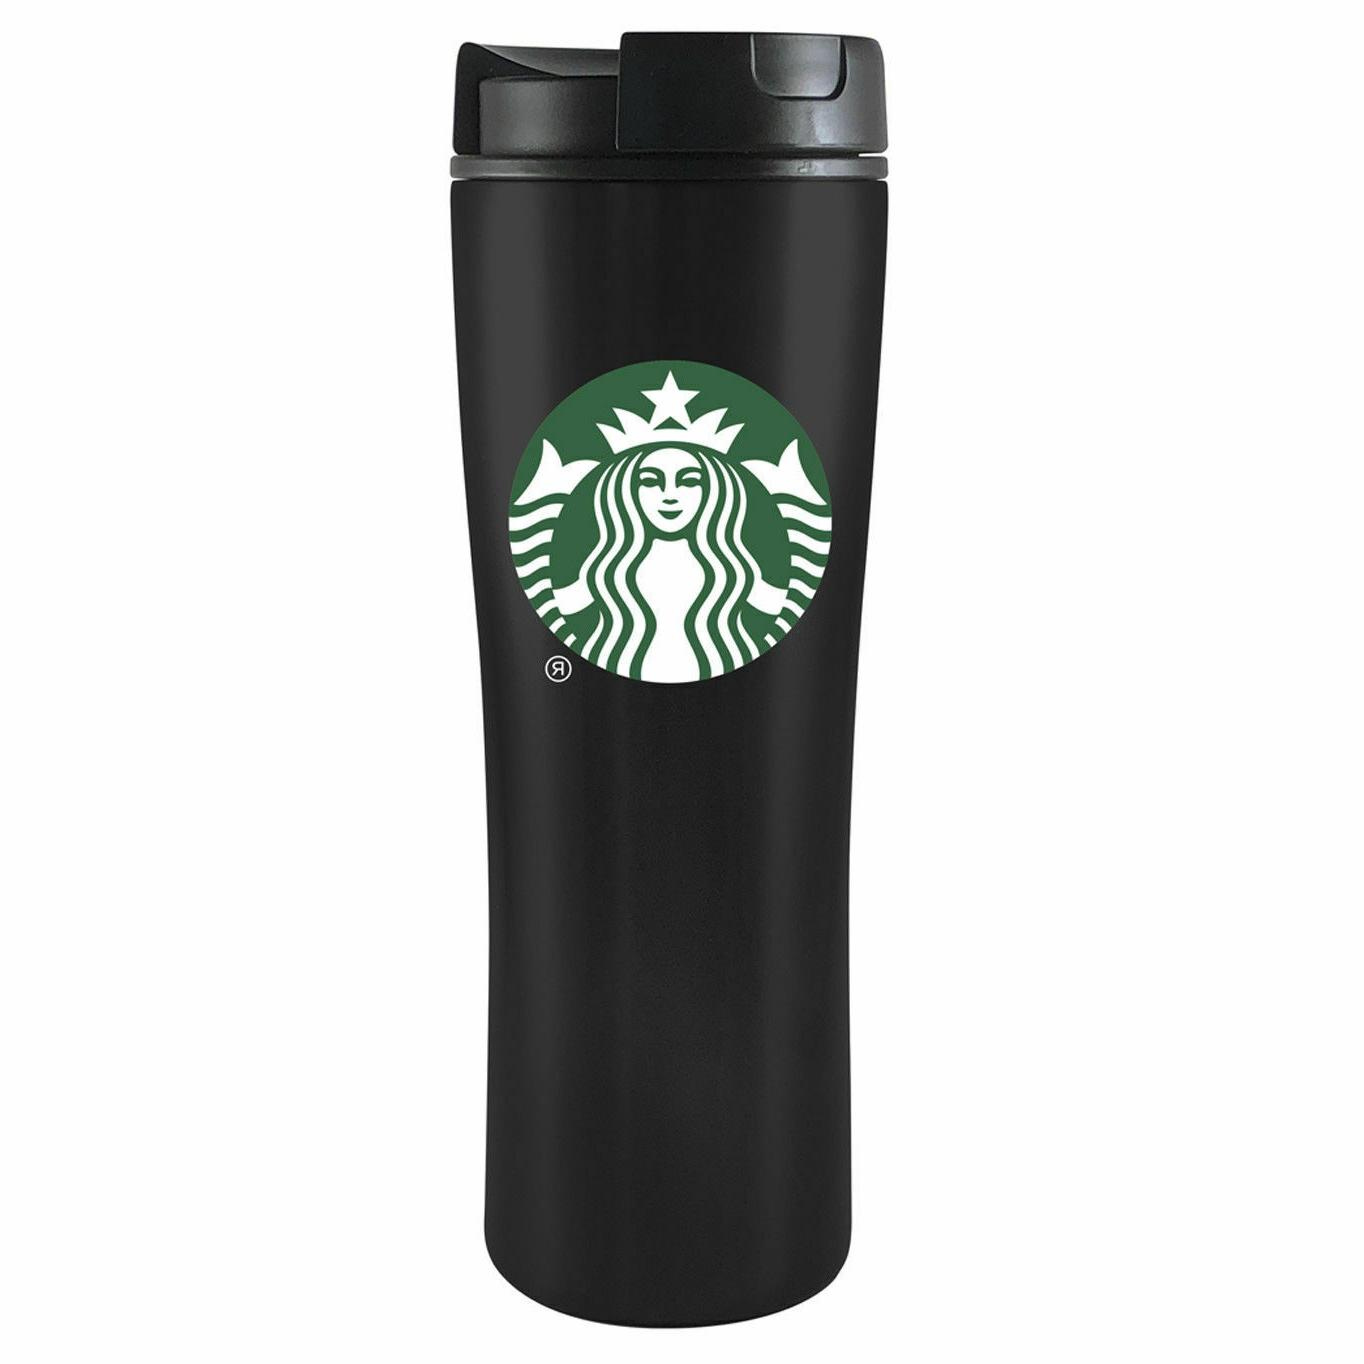 Starbucks Travel Cup Tumbler With